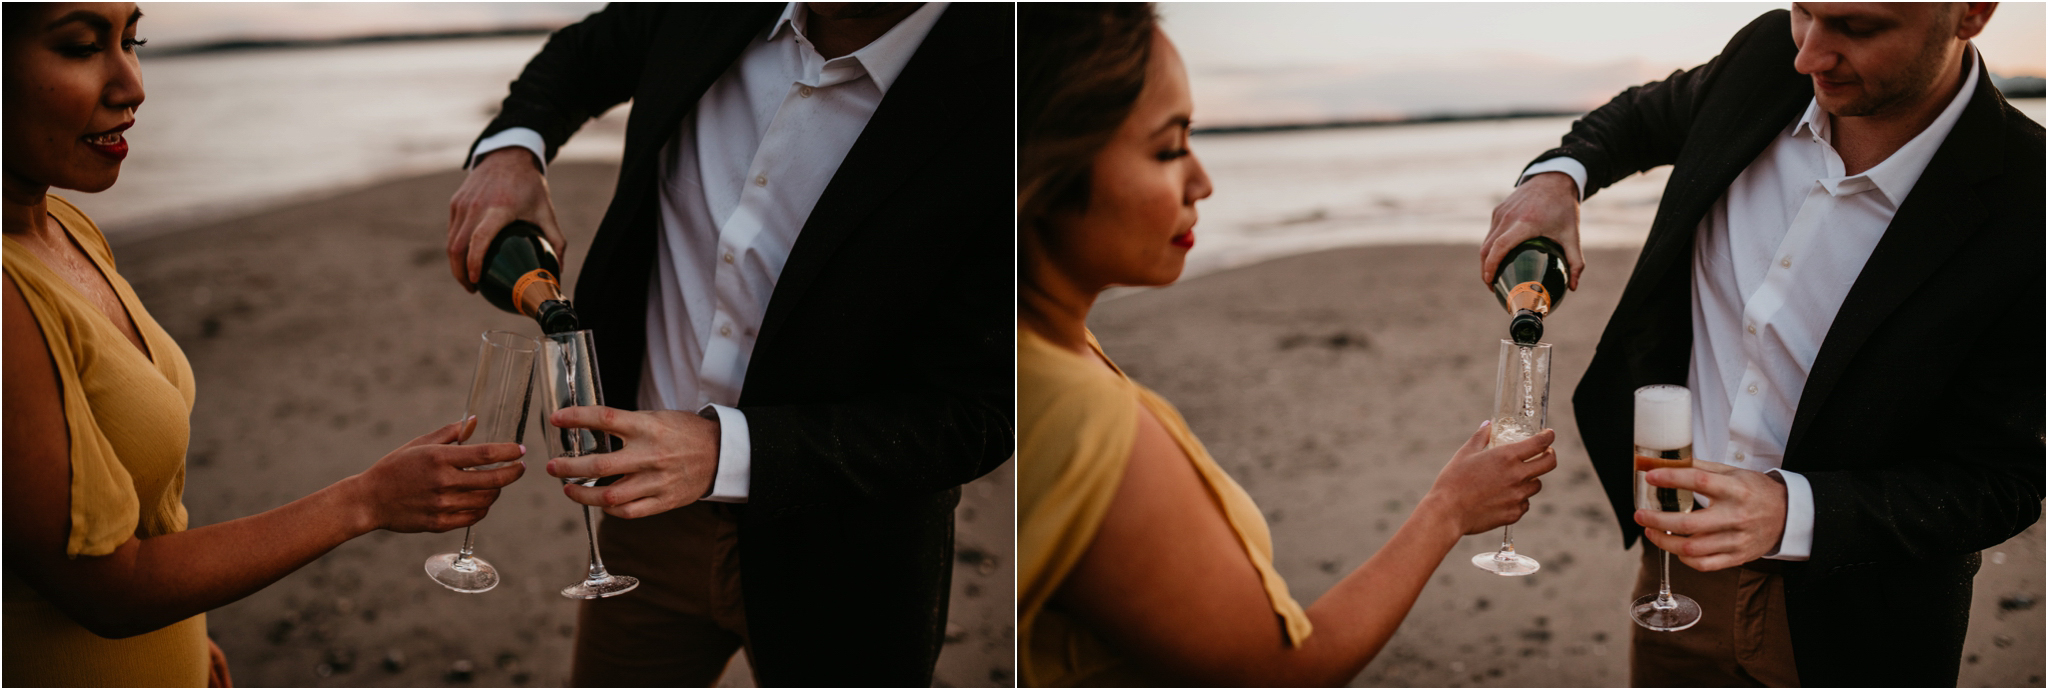 thuy-and-andrew-discovery-park-seattle-beach-engagement-session-047.jpg